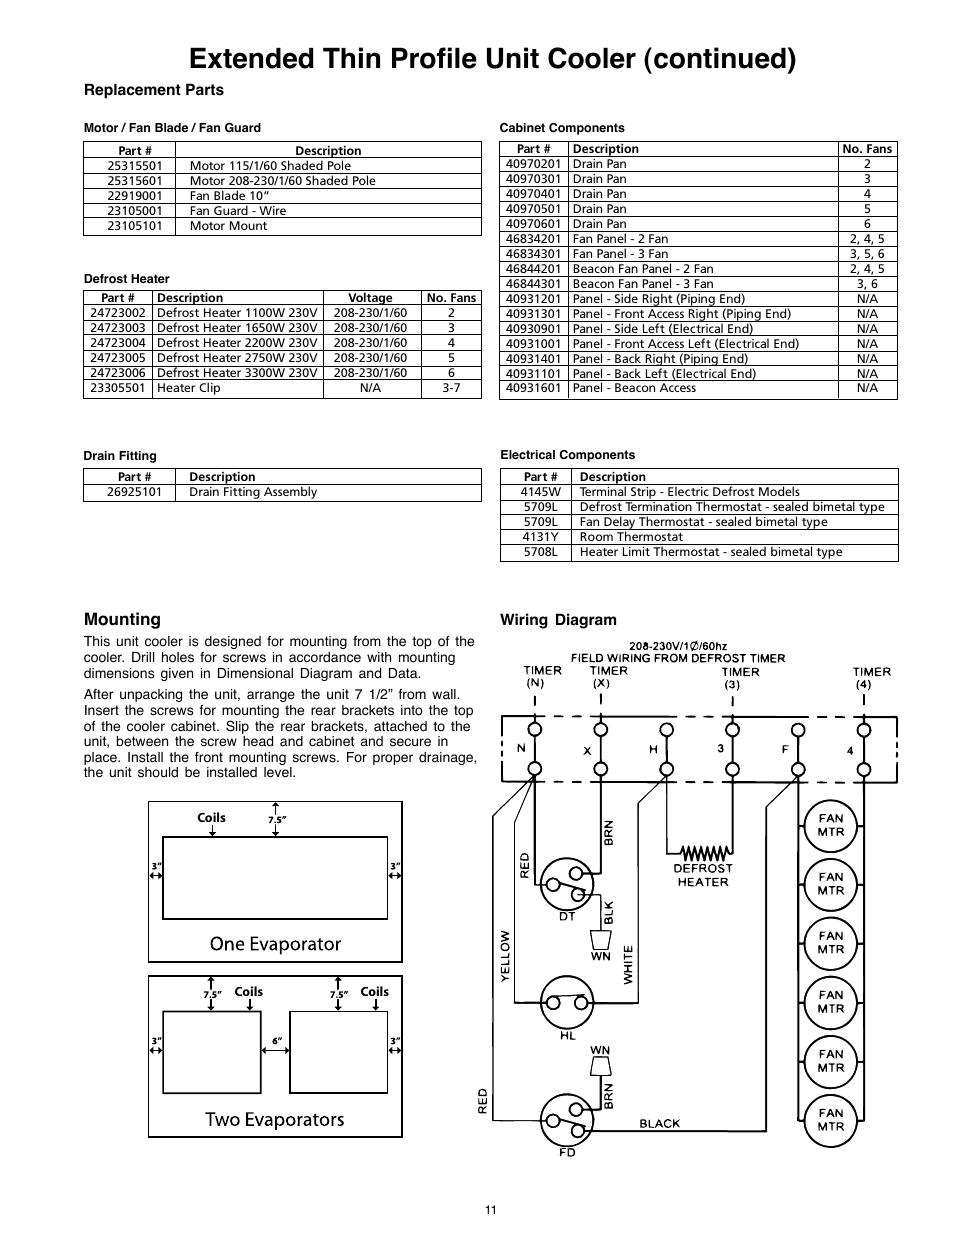 heatcraft refrigeration products 25005601 page11?resize\\\\\\\\\\\\\\\\\\\\\\\\\\\\\\\\\\\\\\\\\\\\\\\\\\\\\\\\\\\\\\\=665%2C861 bohn commercial freezer electrical wiring diagram bohn wiring larkin evaporator wiring diagram at n-0.co